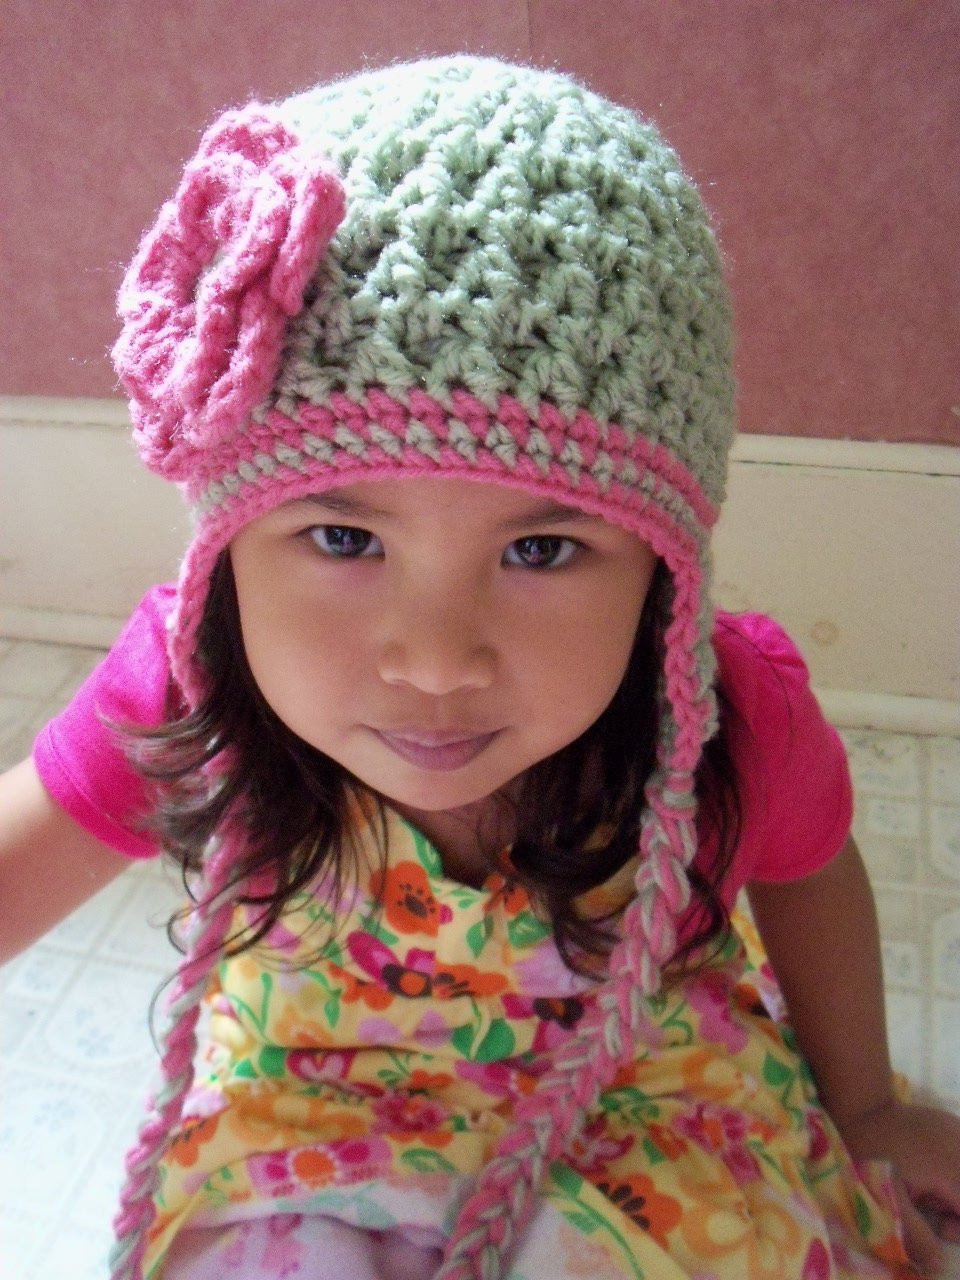 Crochet Girl Hat Beautiful Crochet Children Hattoddler Hat Baby Girl Hat Crochet Of Superb 47 Pics Crochet Girl Hat